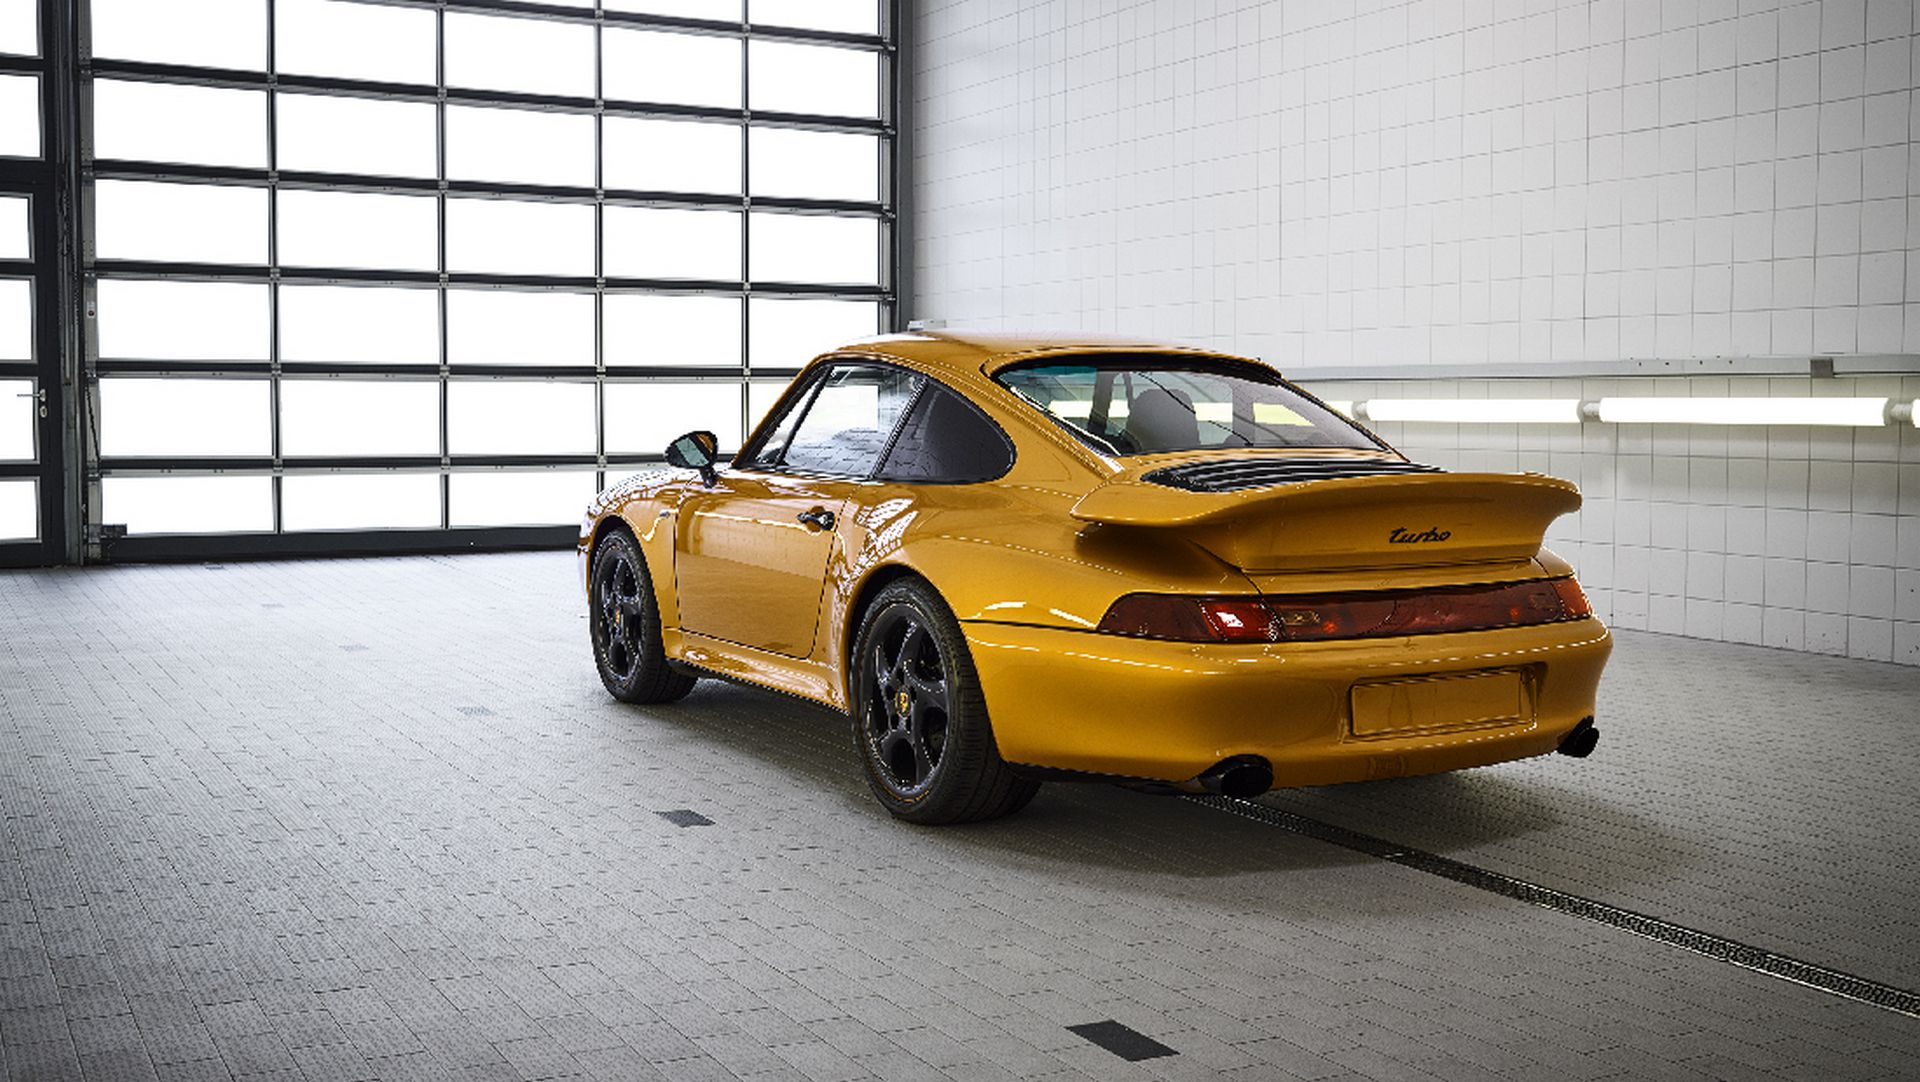 a6ae9421-porsche-993-turbo-project-gold-6.jpg